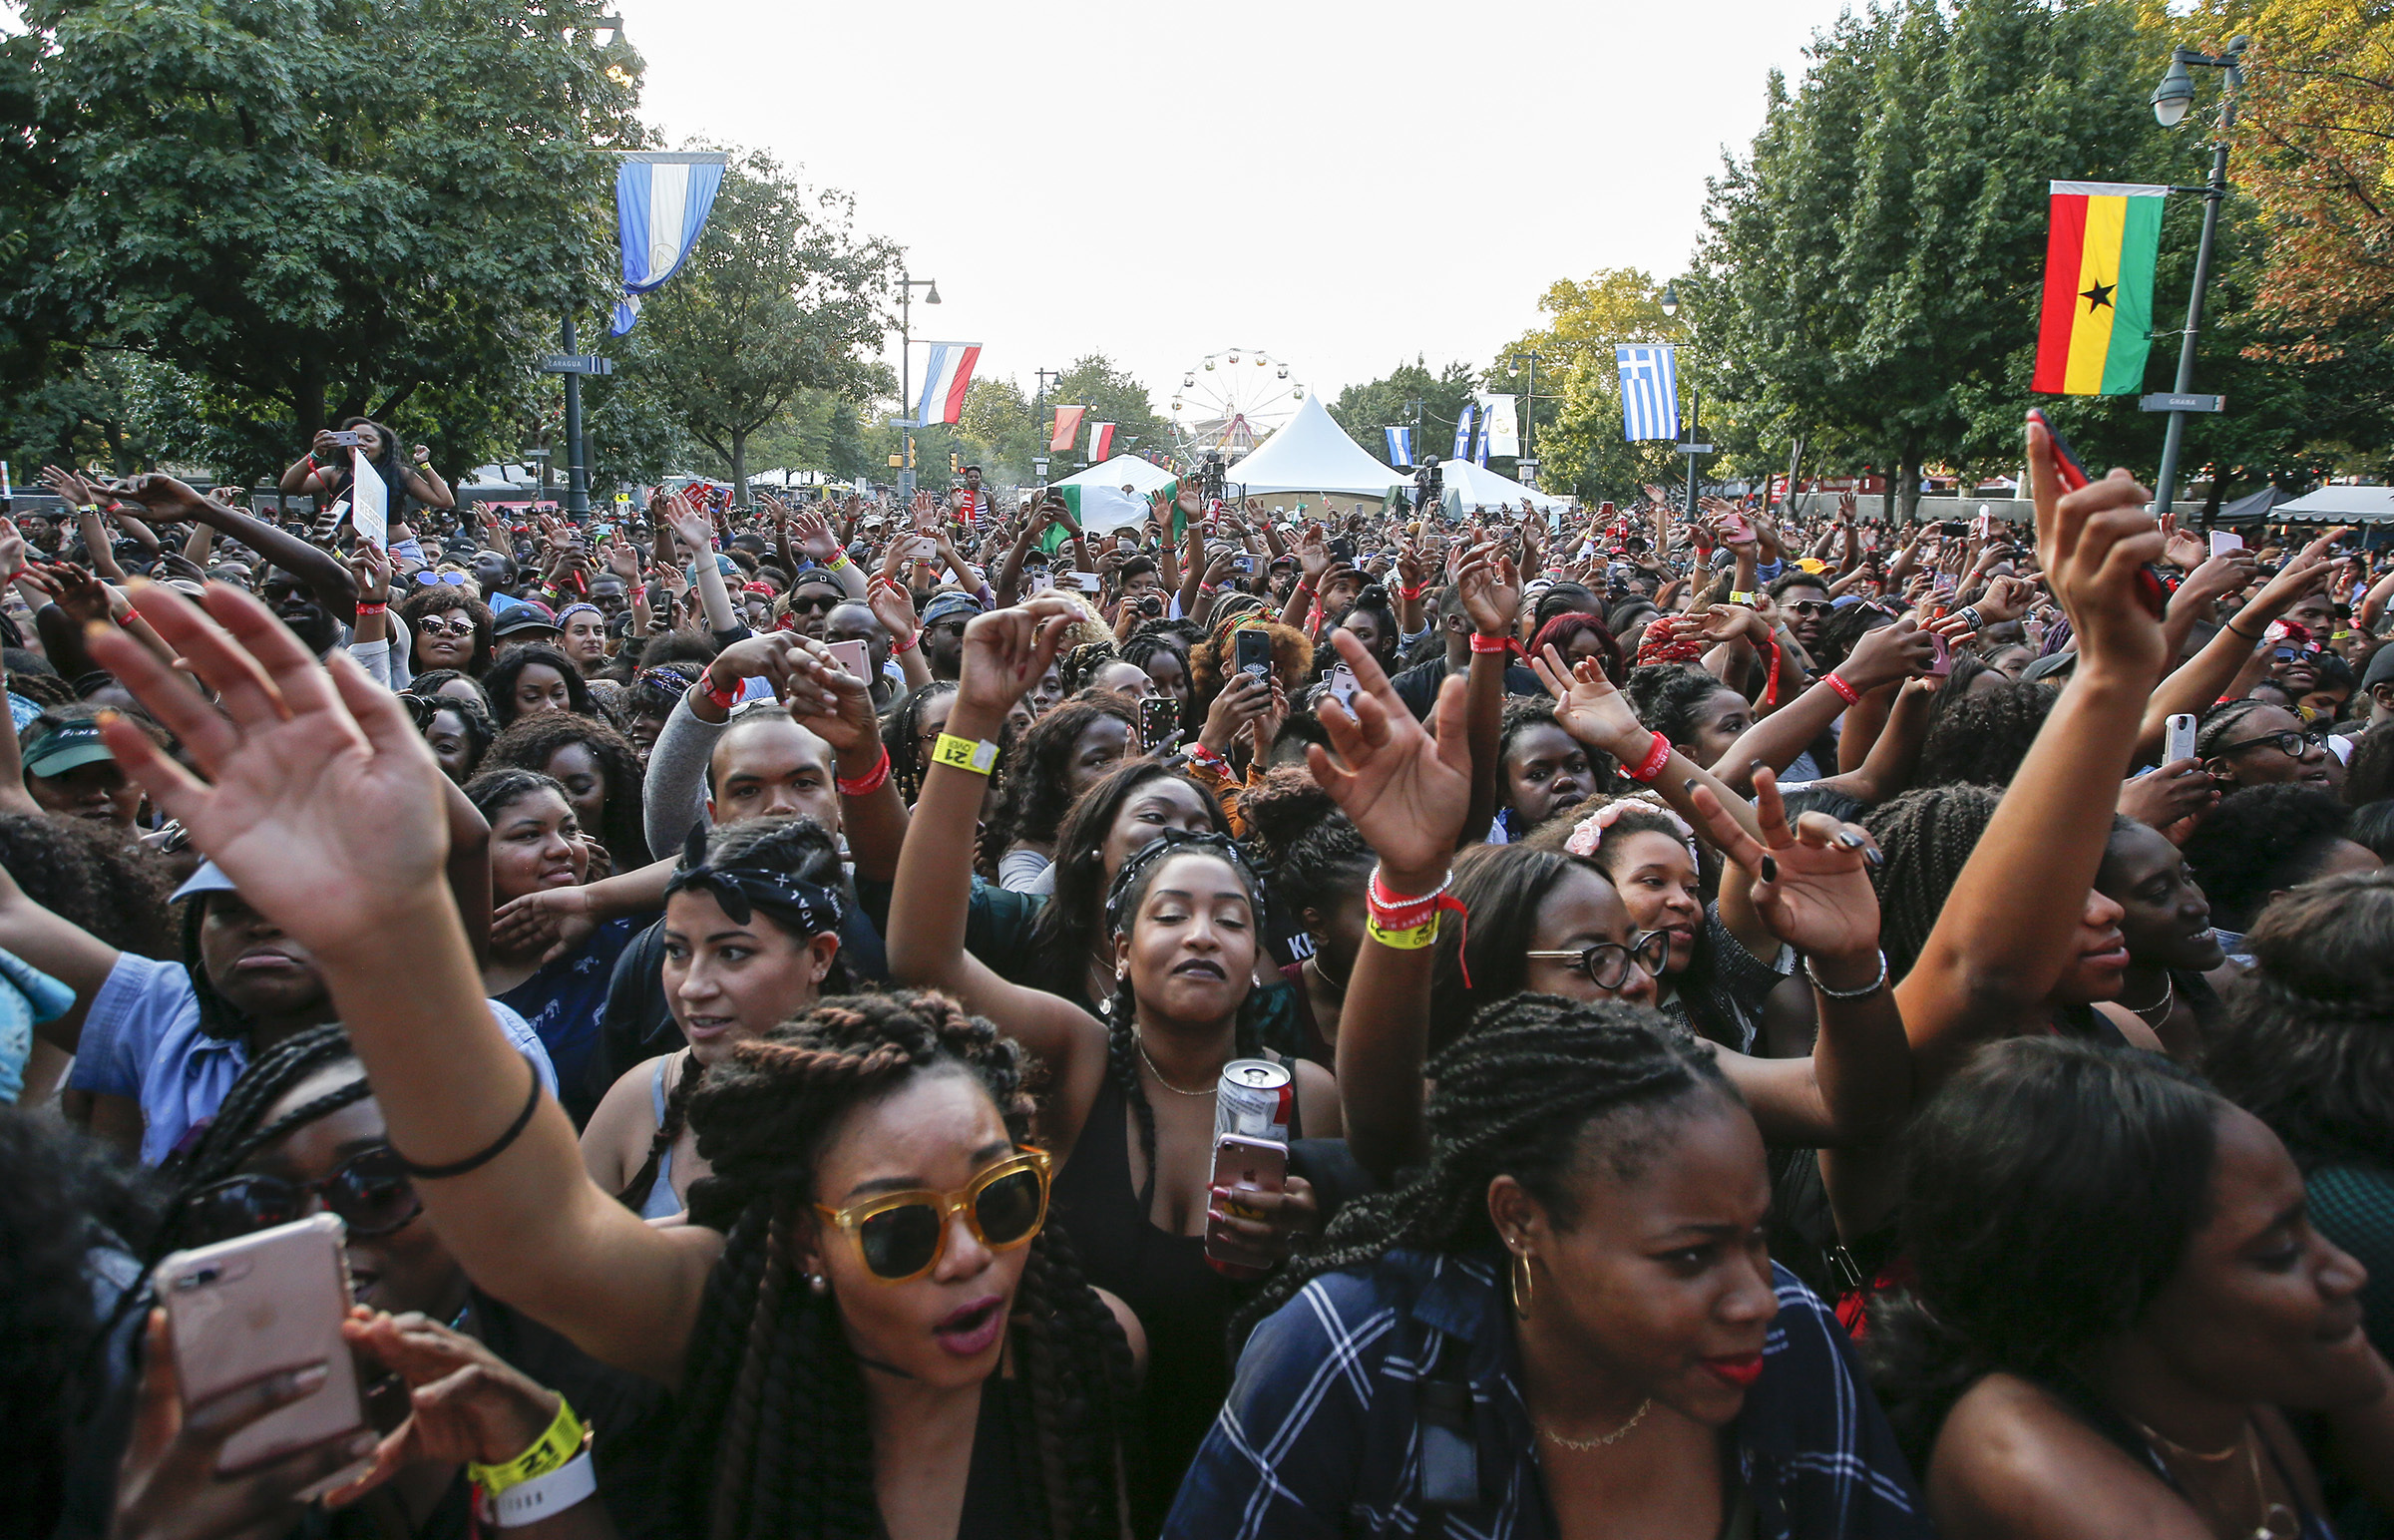 Fans wave their arms while Maleek Berry performed at the Tidal Stage during Made In America along the Benjamin Franklin Parkway on Sunday, September 3, 2017.